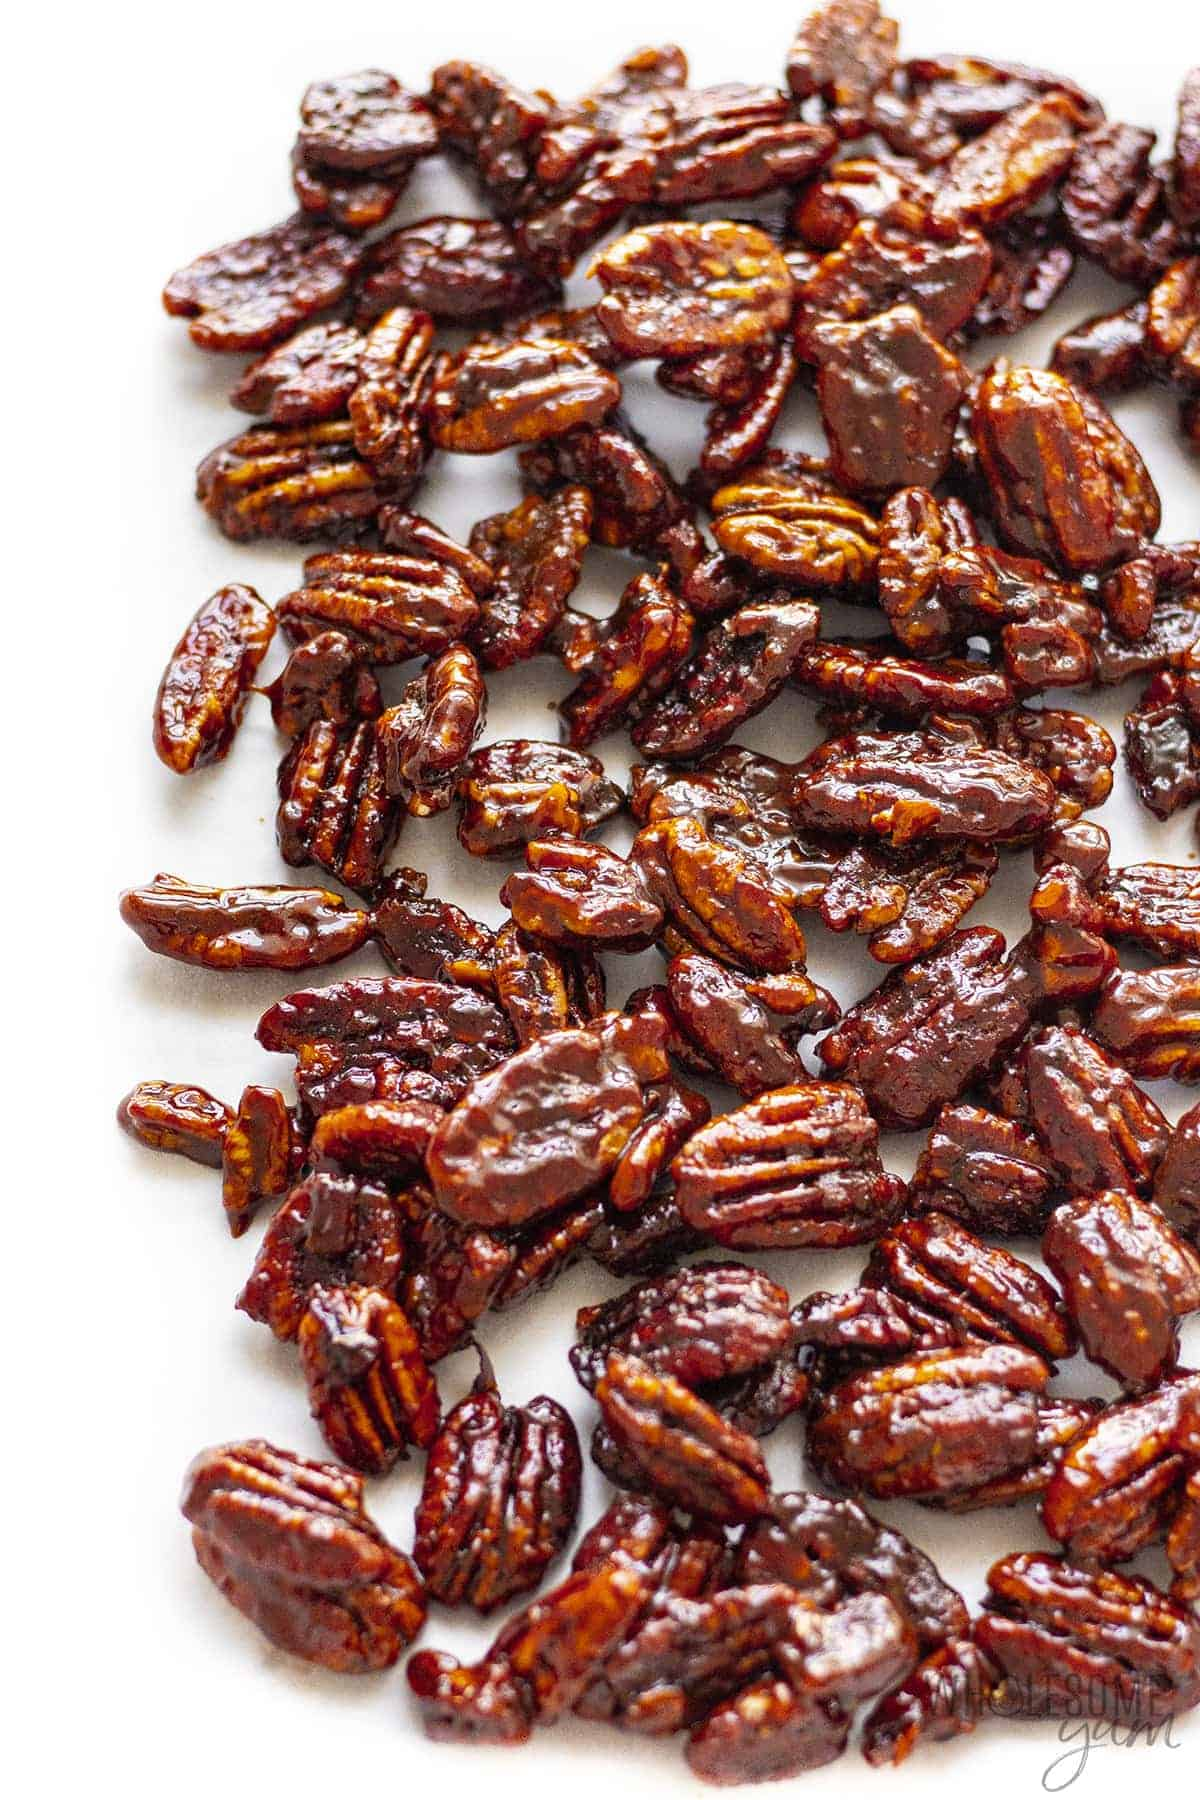 Sugar free candied pecans on a cutting board